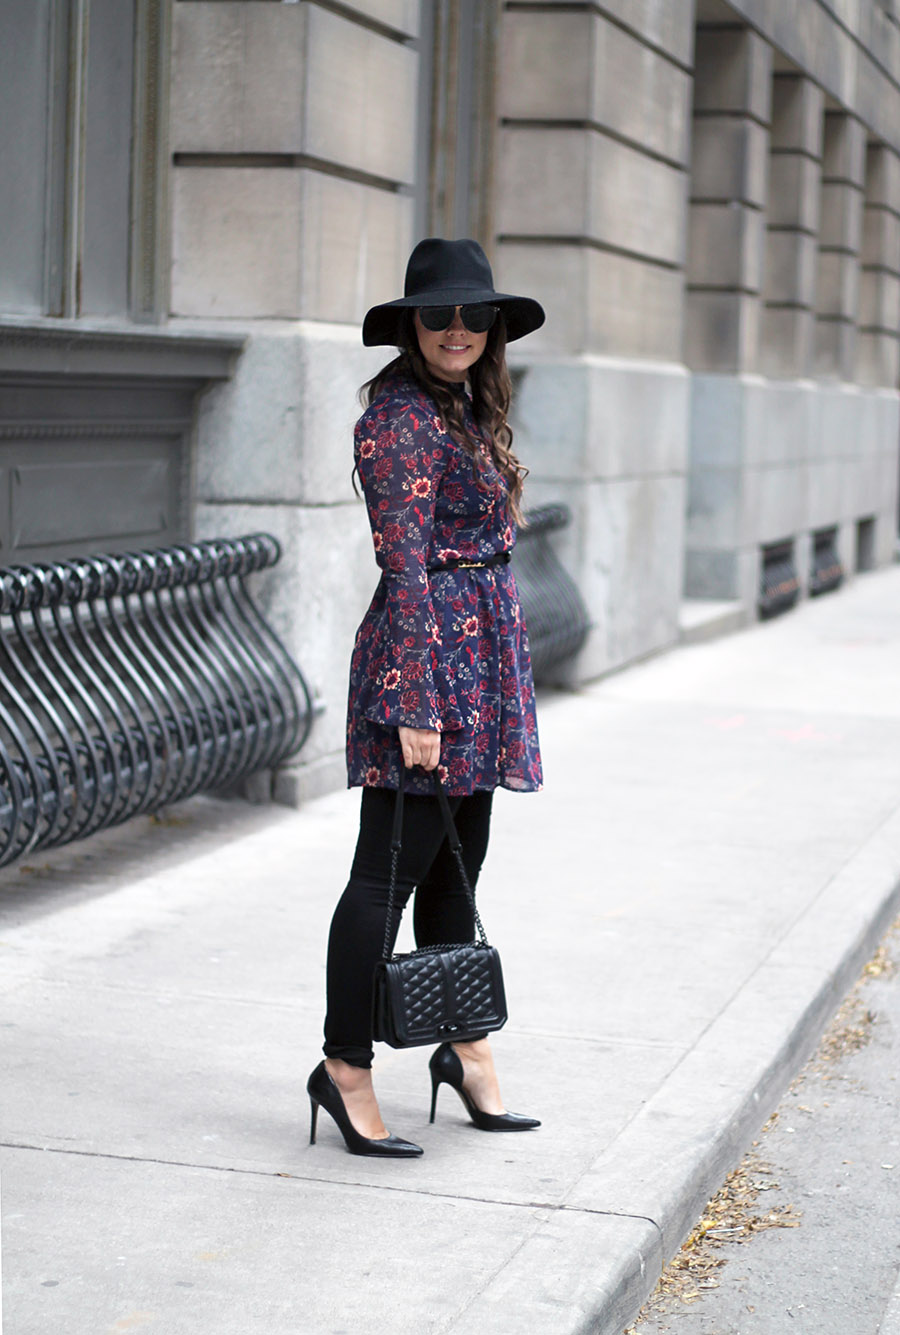 toronto-fashion-style-blog-a-side-of-vogue-victoria-simpson